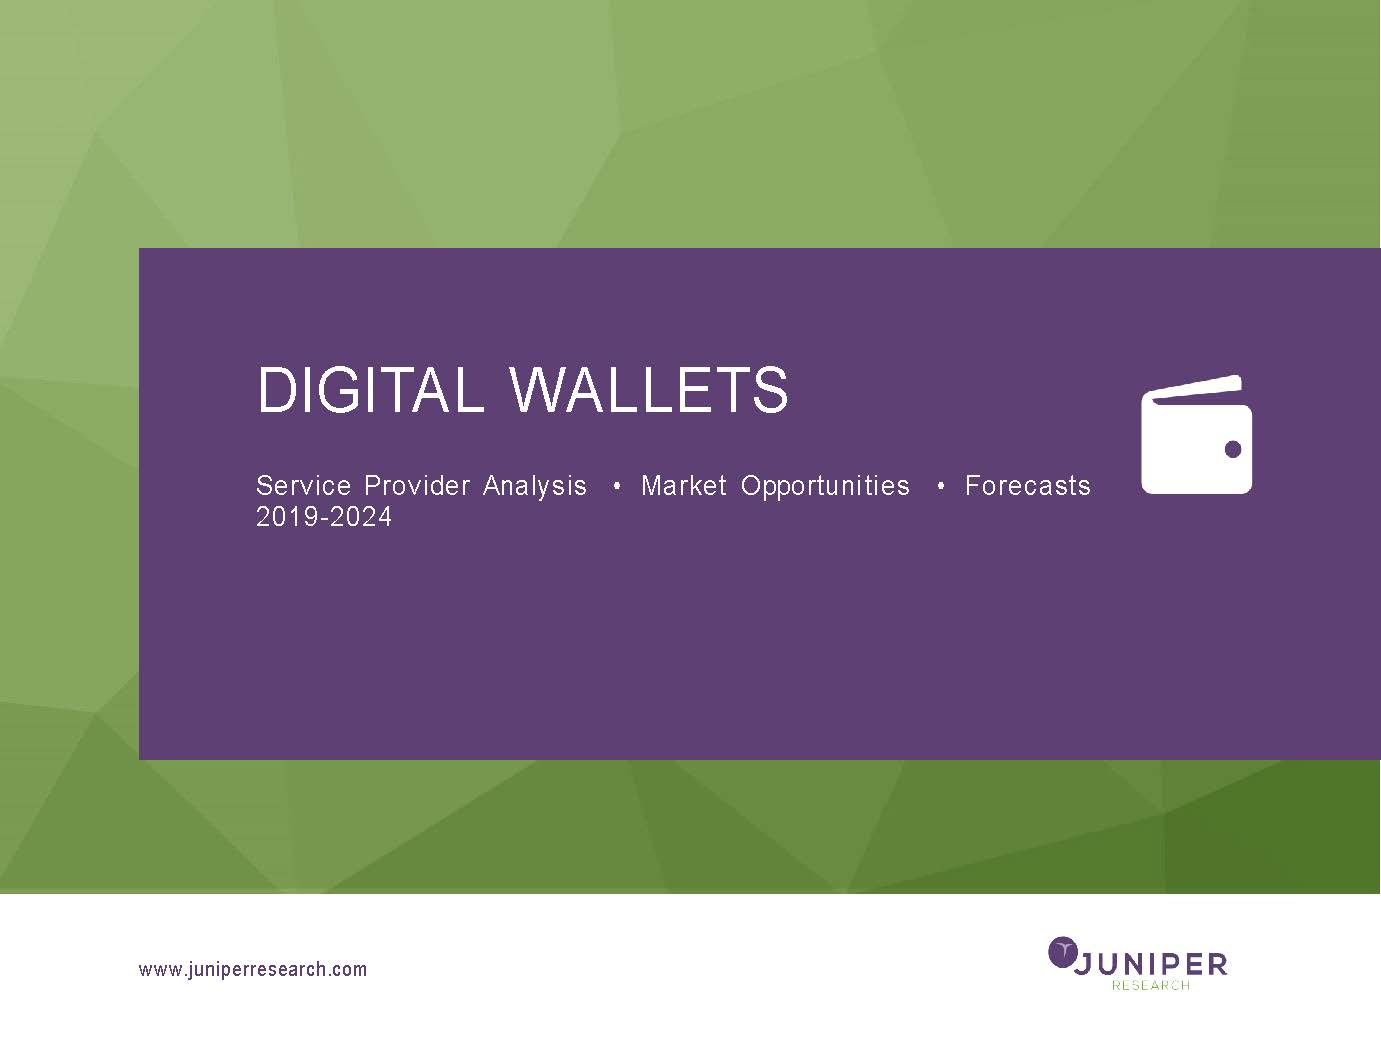 Digital Wallets: Service Provider Analysis, Market Opportunities & Forecasts 2019-2024